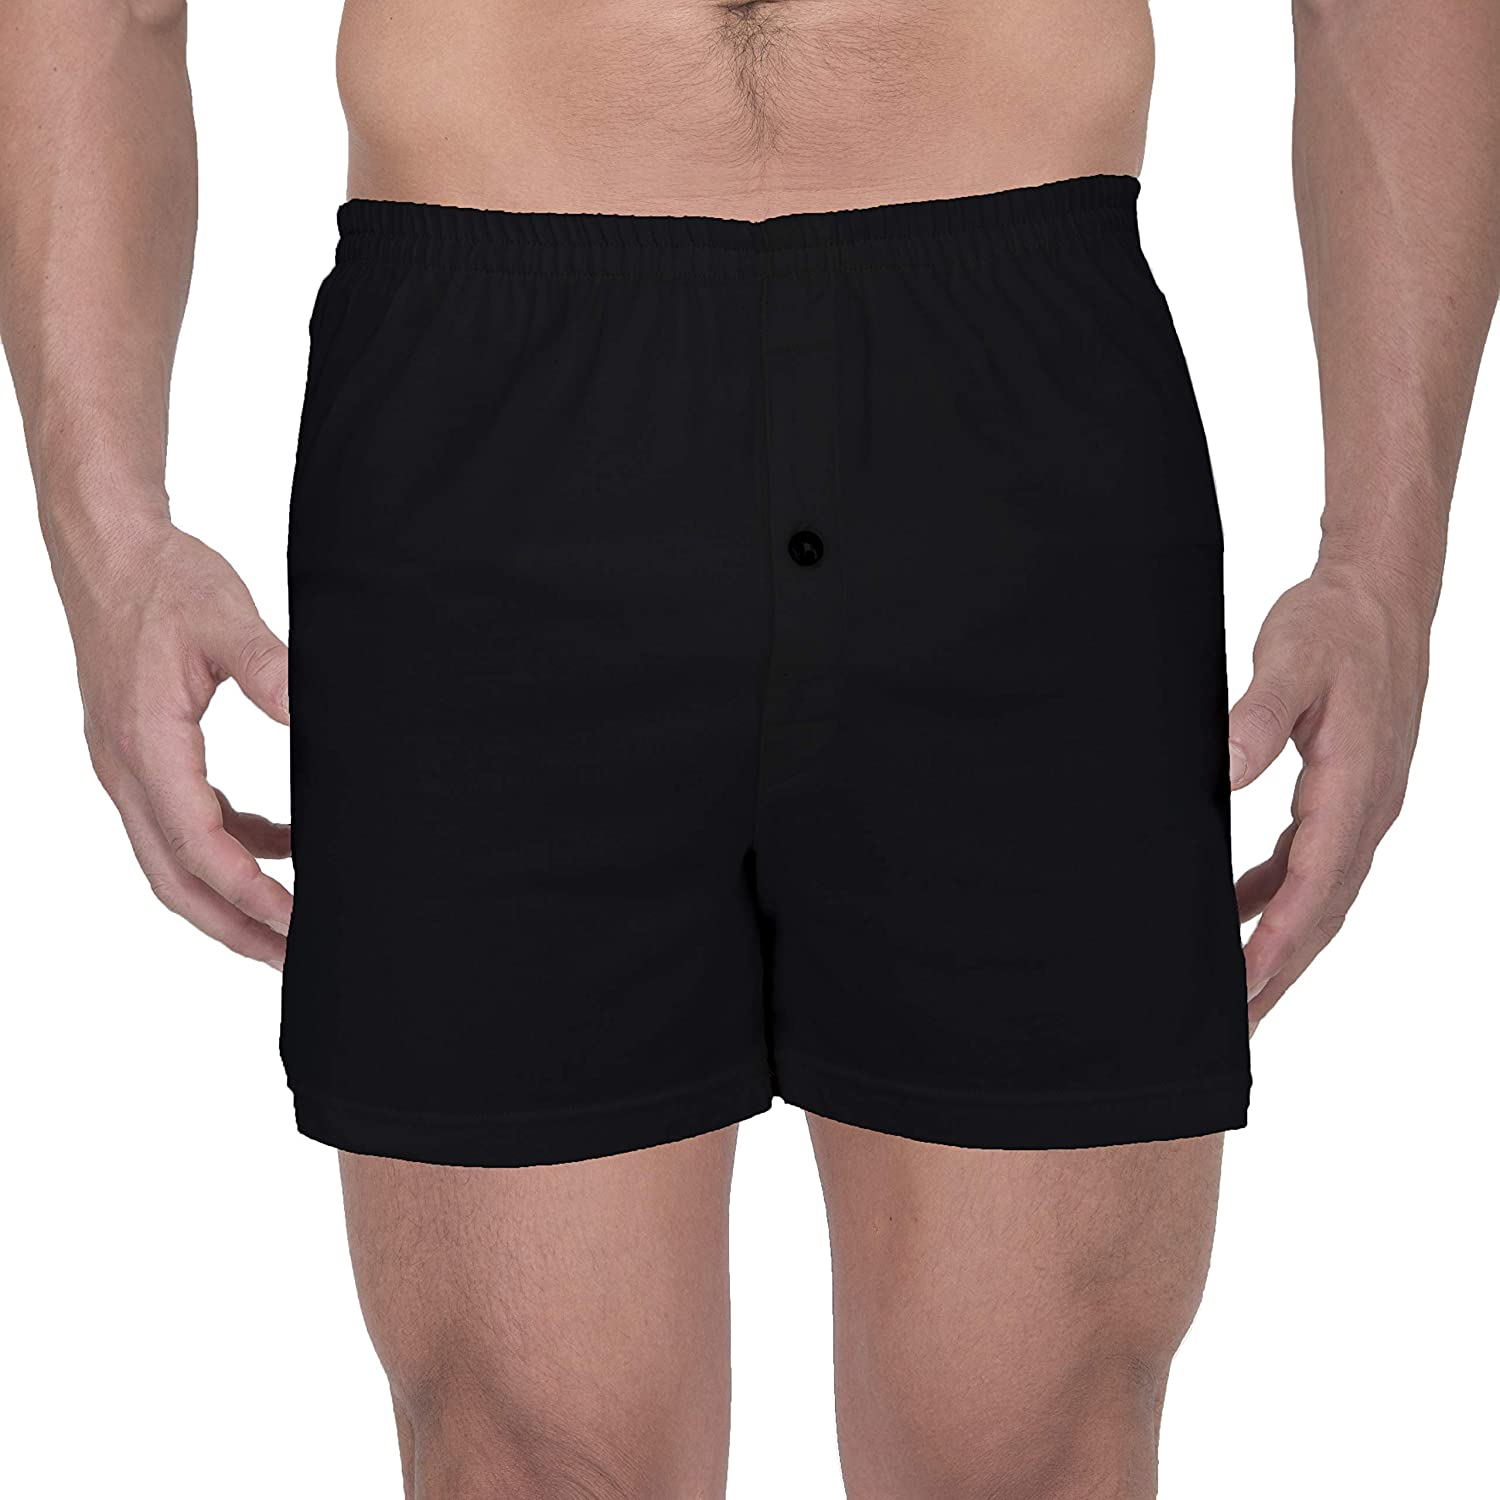 Cottonique Mens Elasticized Loose Boxer Shorts Made from 100/% Organic Cotton Melange Grey